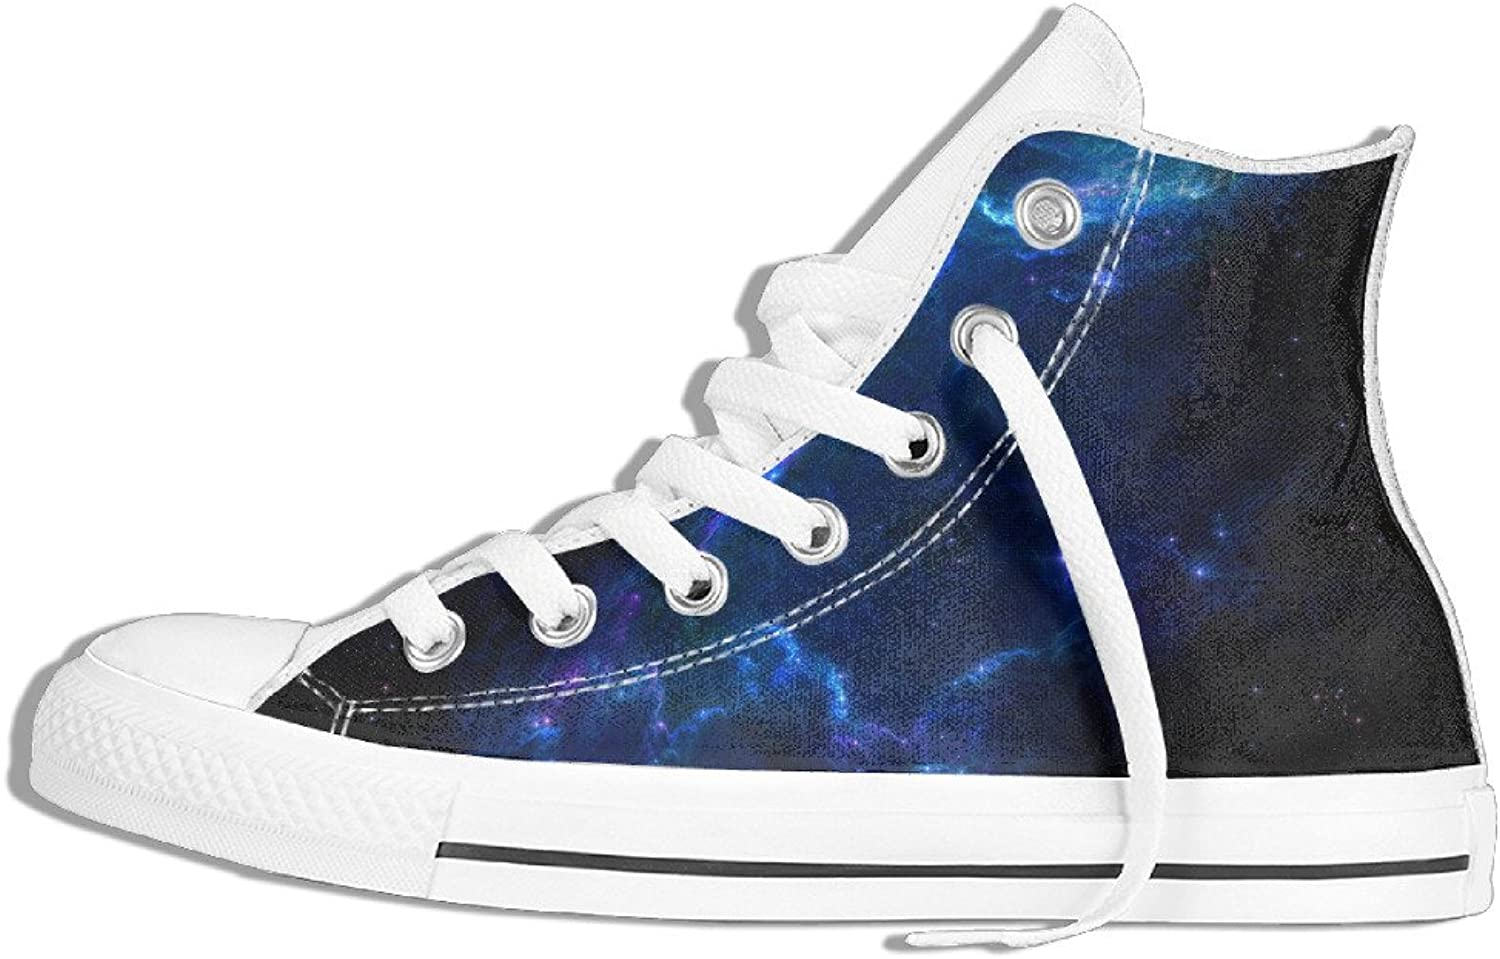 Efbj bluee Nebula Unisex Comfortable High Top Gym shoes Trainers Sneakers for Men and Women